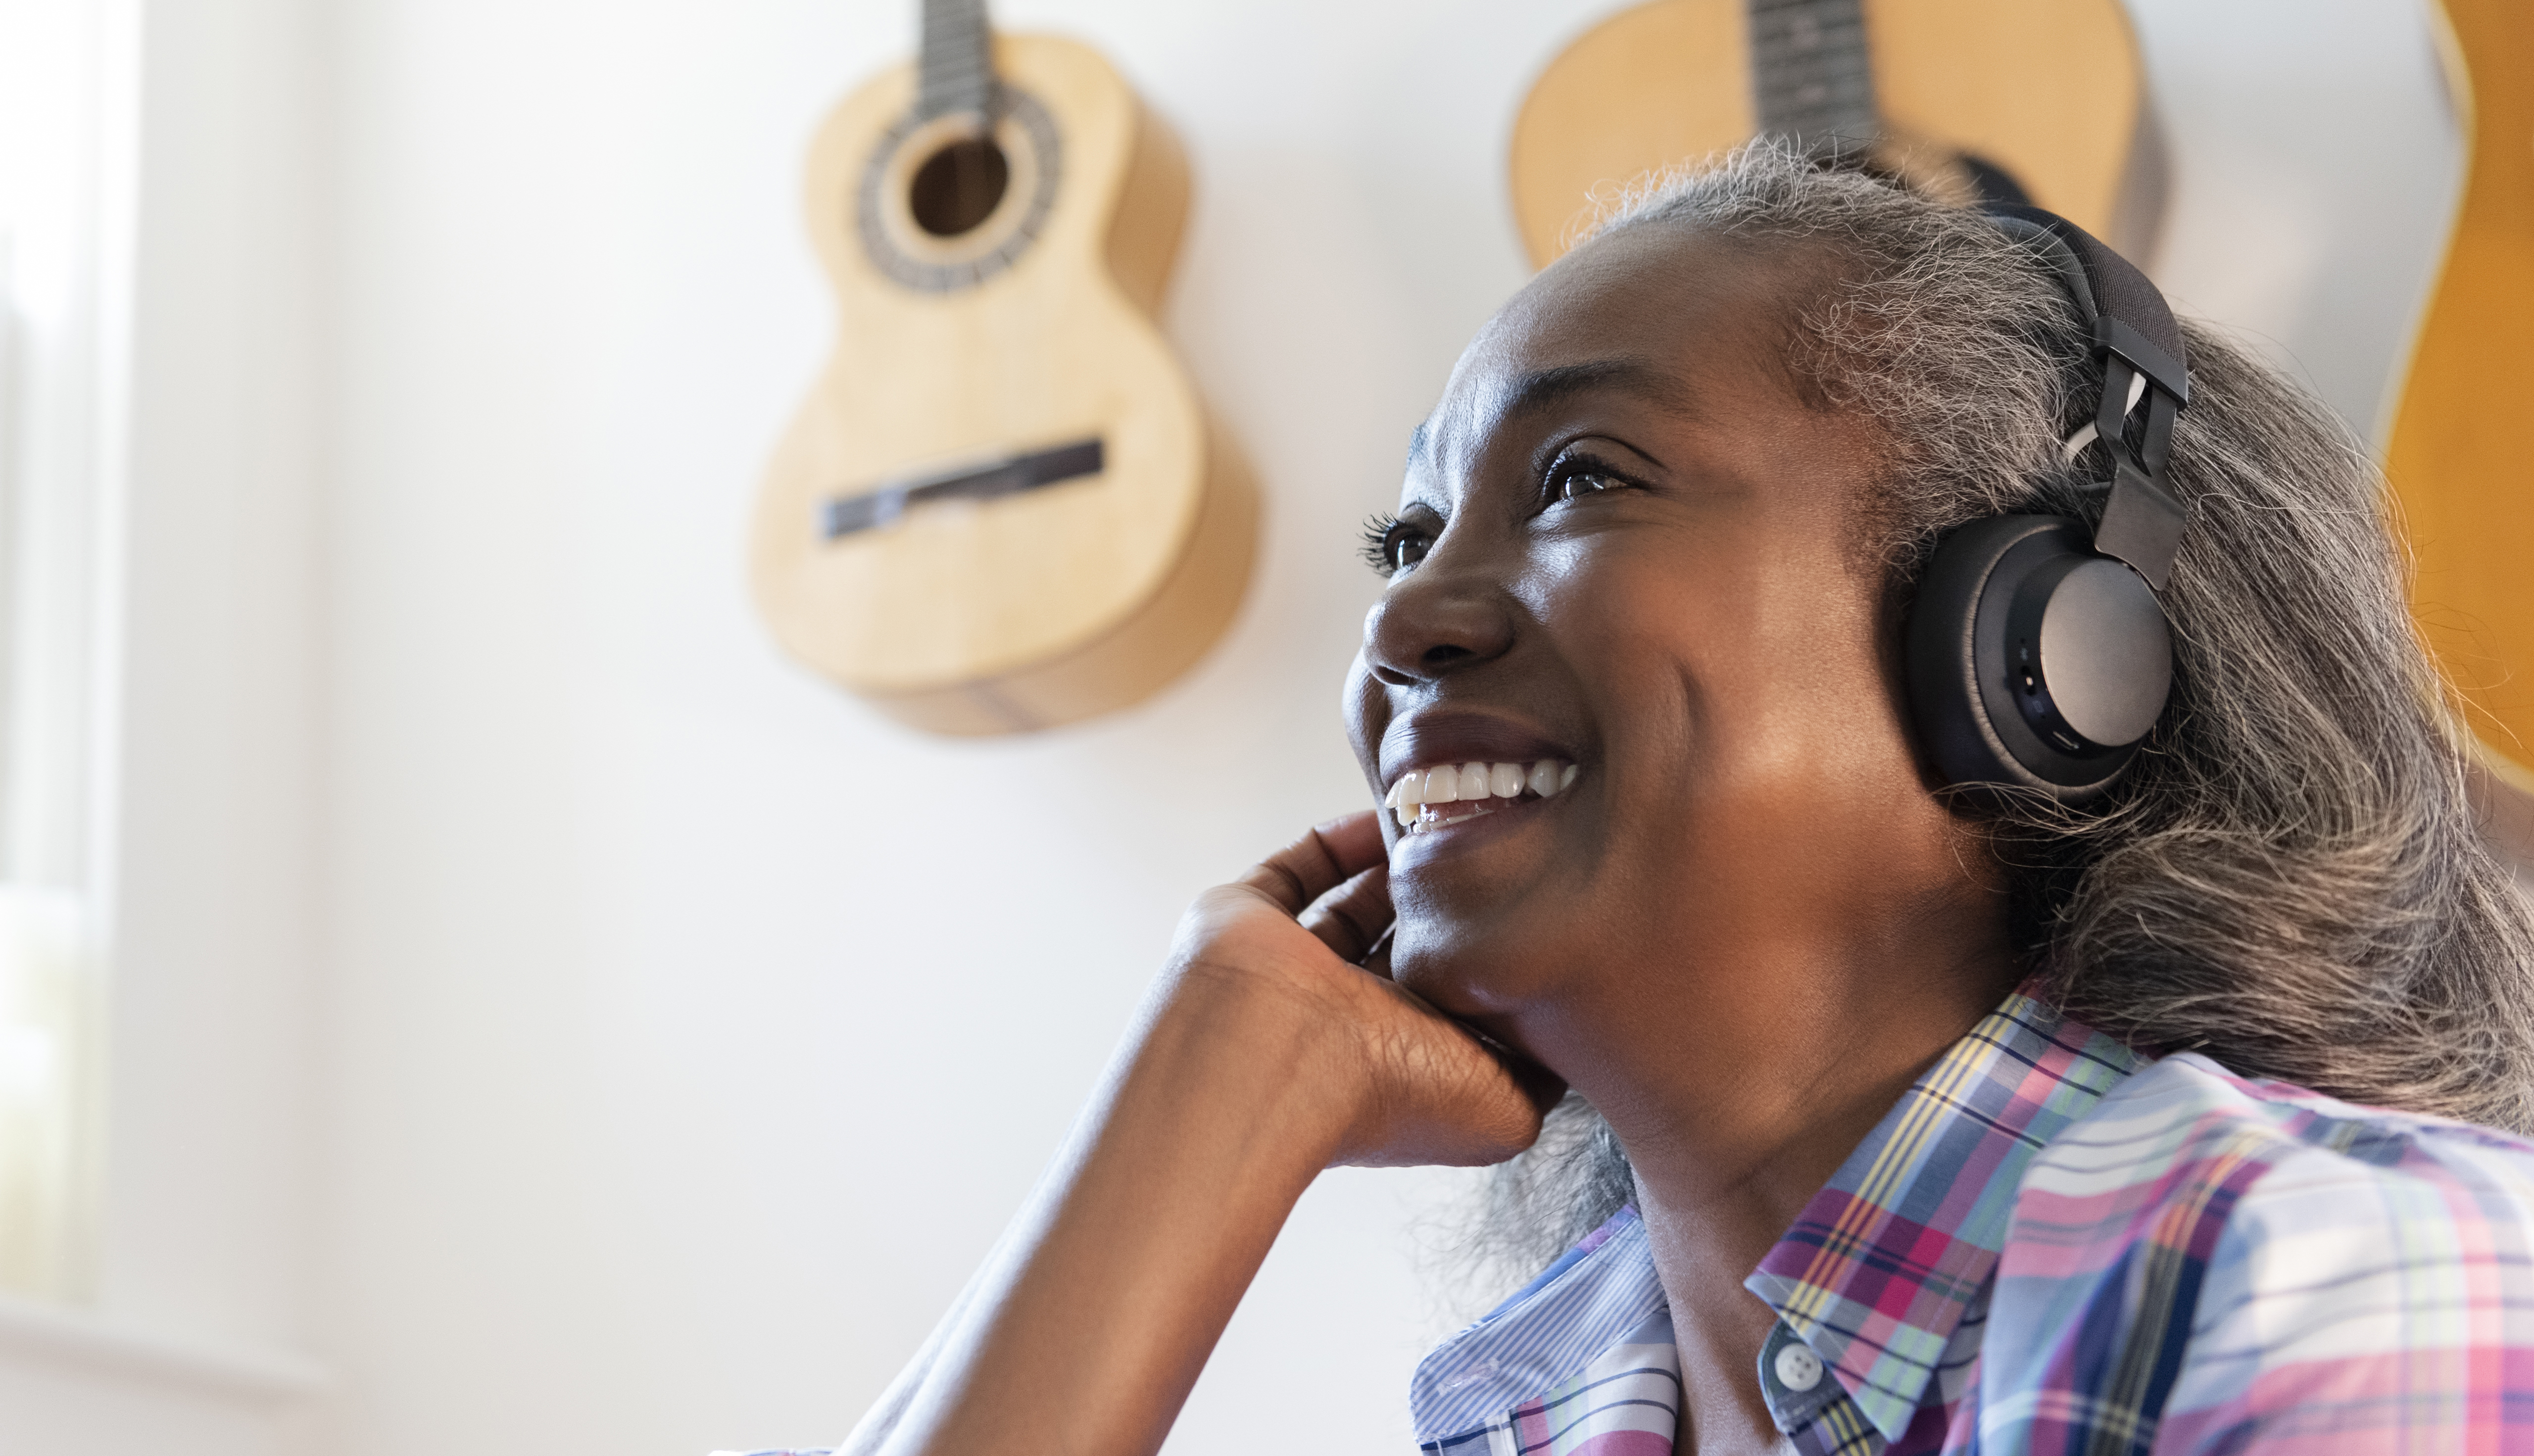 woman listening to music on headphones with guitars hung on the wall behind her